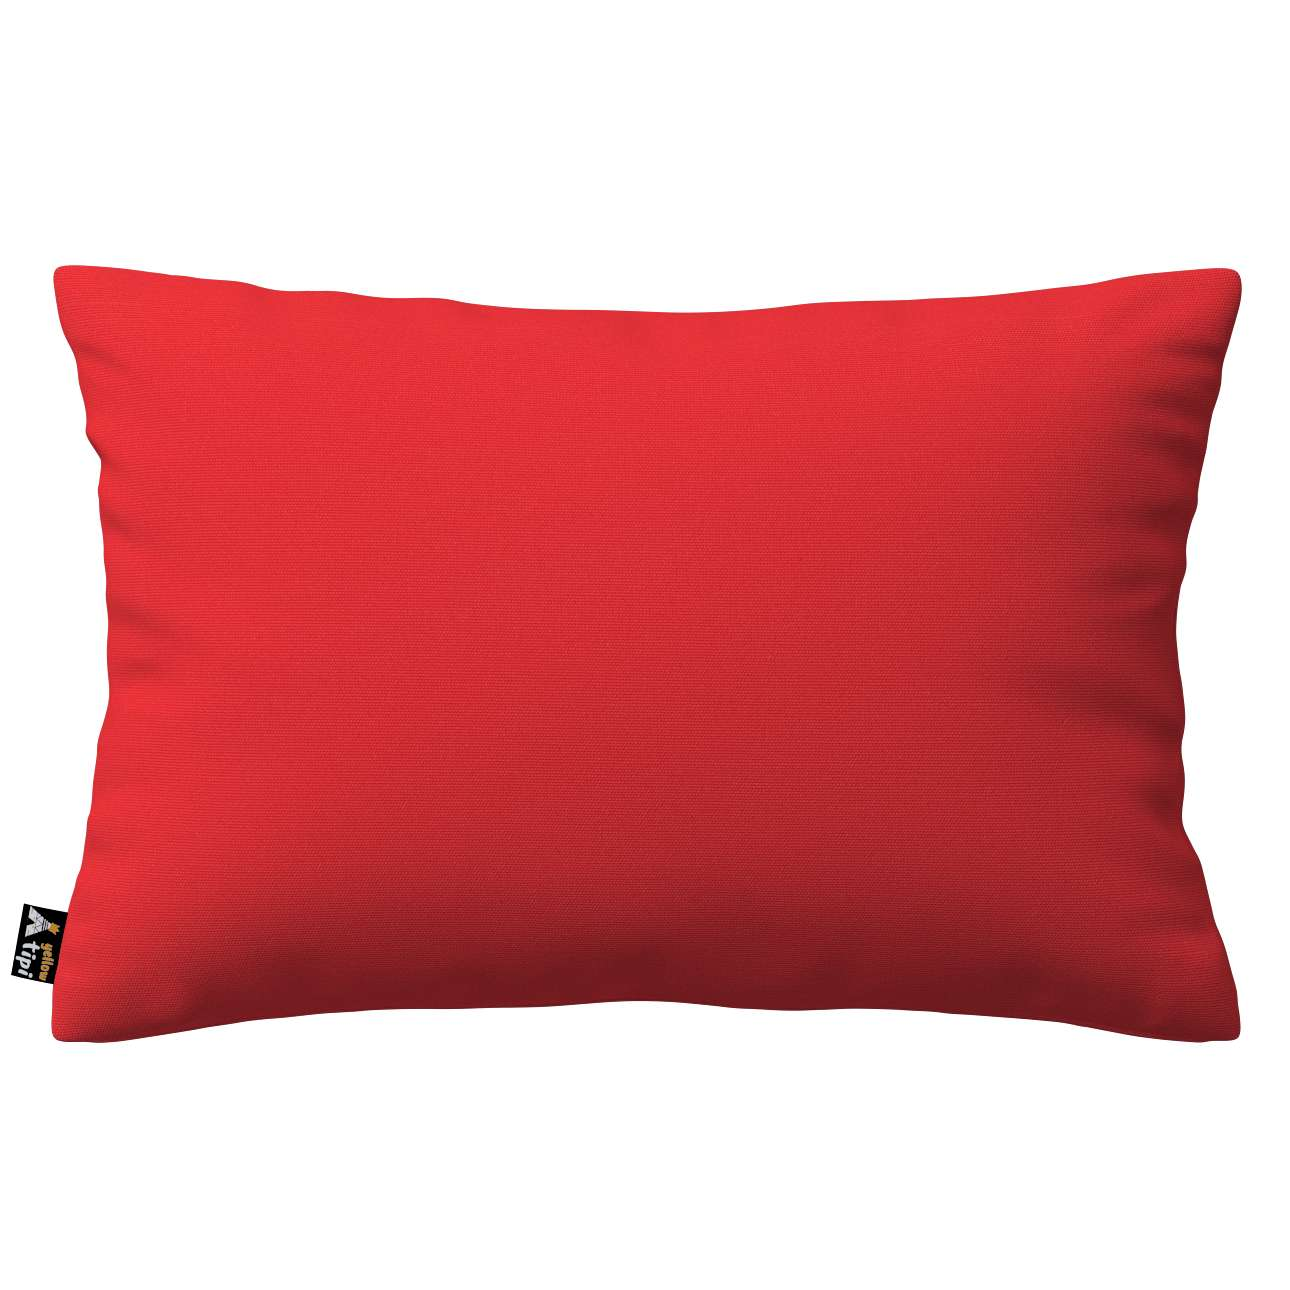 Milly rectangular cushion cover in collection Happiness, fabric: 133-43